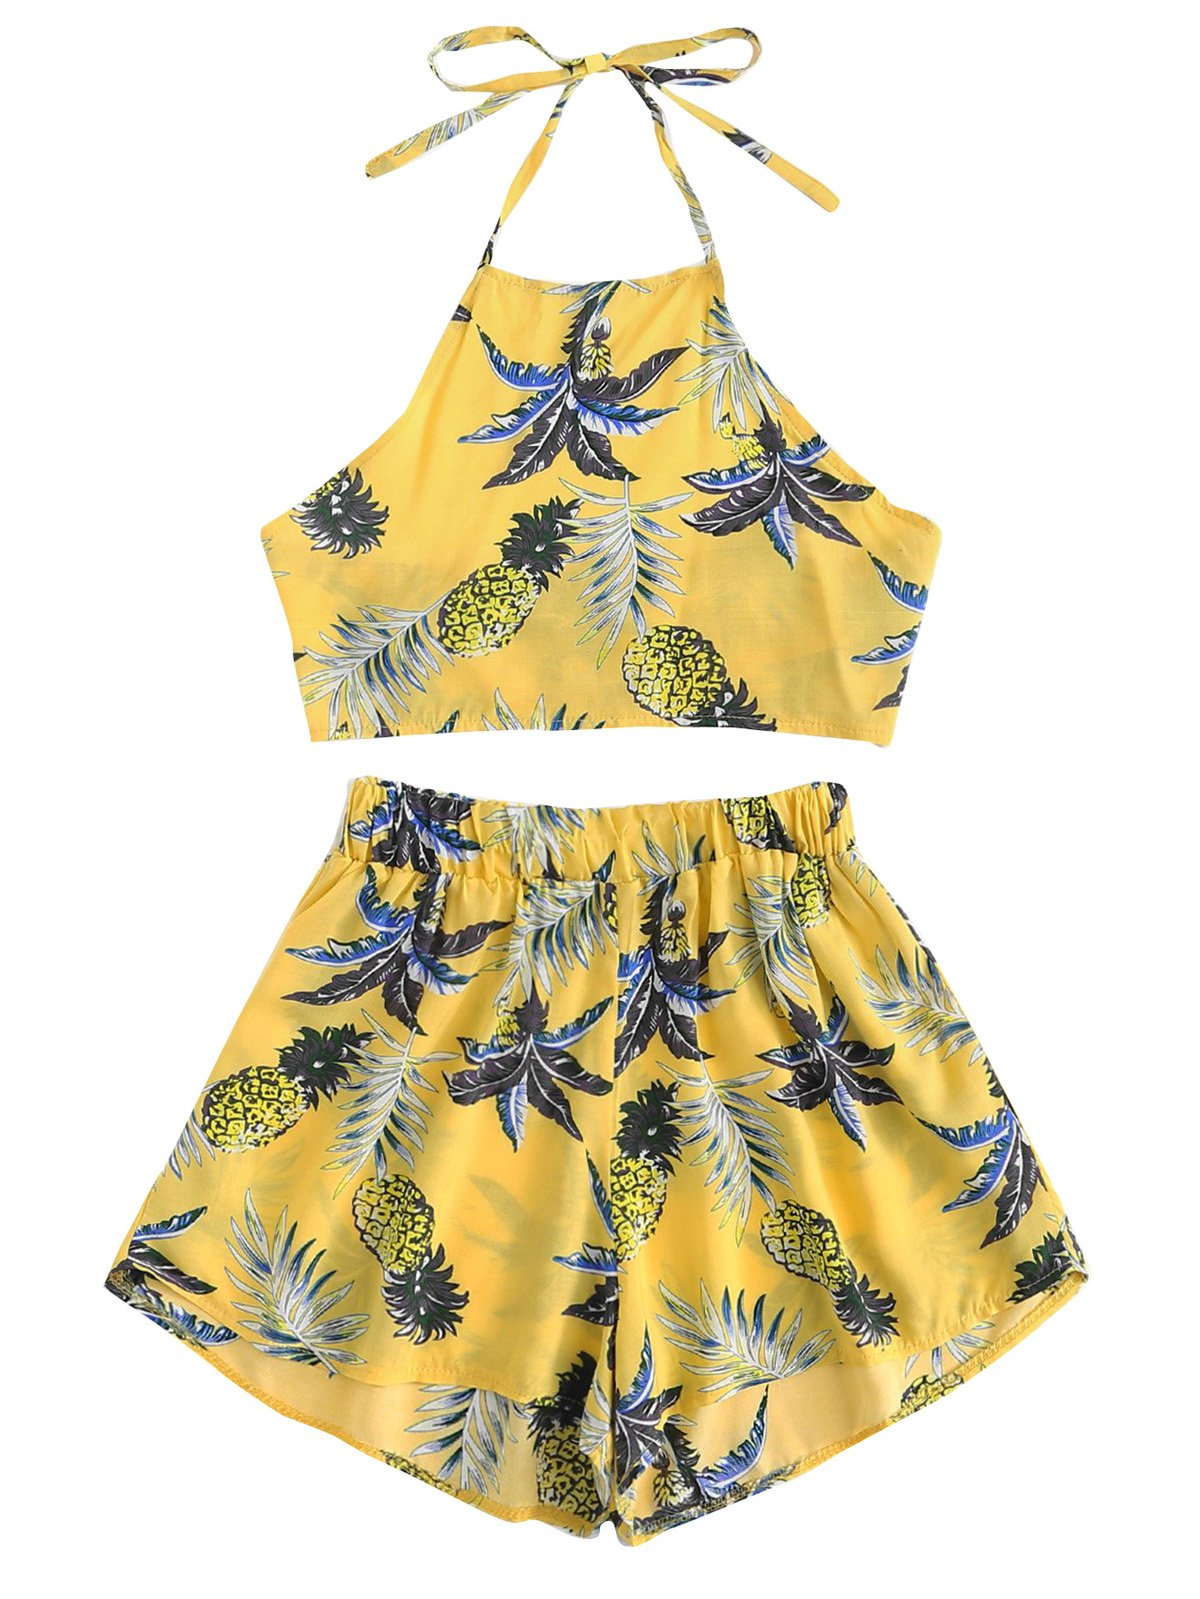 July A Women's 2 Piece Outfits Halter Sleeveless Crop Cami Top and Shorts Set Yellow S